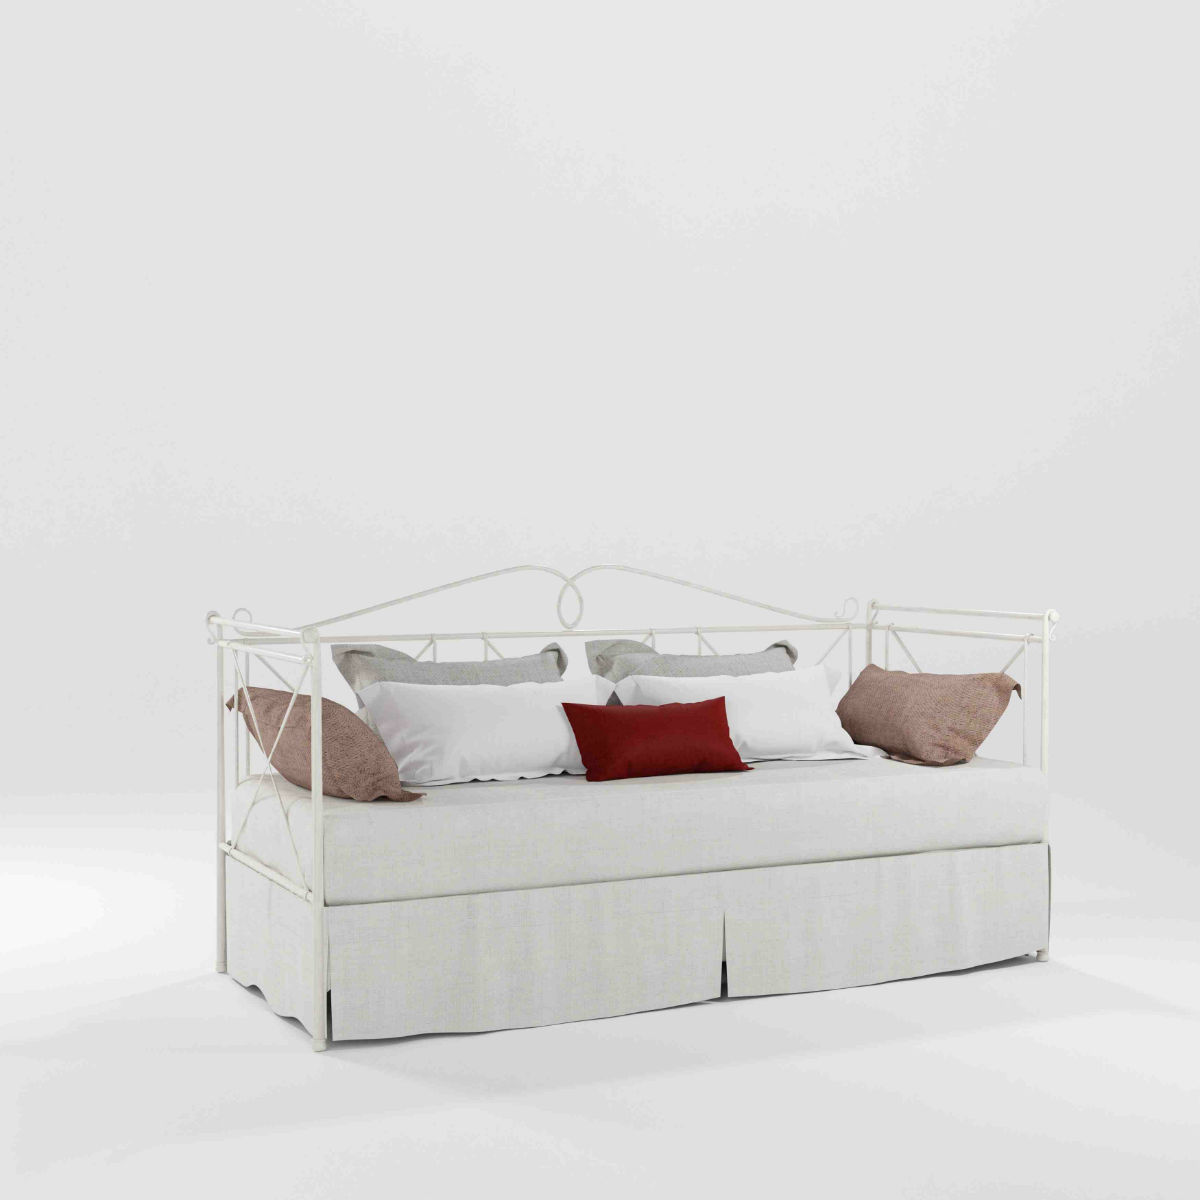 Divano Letto Summertime.Summertime Barel Complementi D Arredo Made In Italy